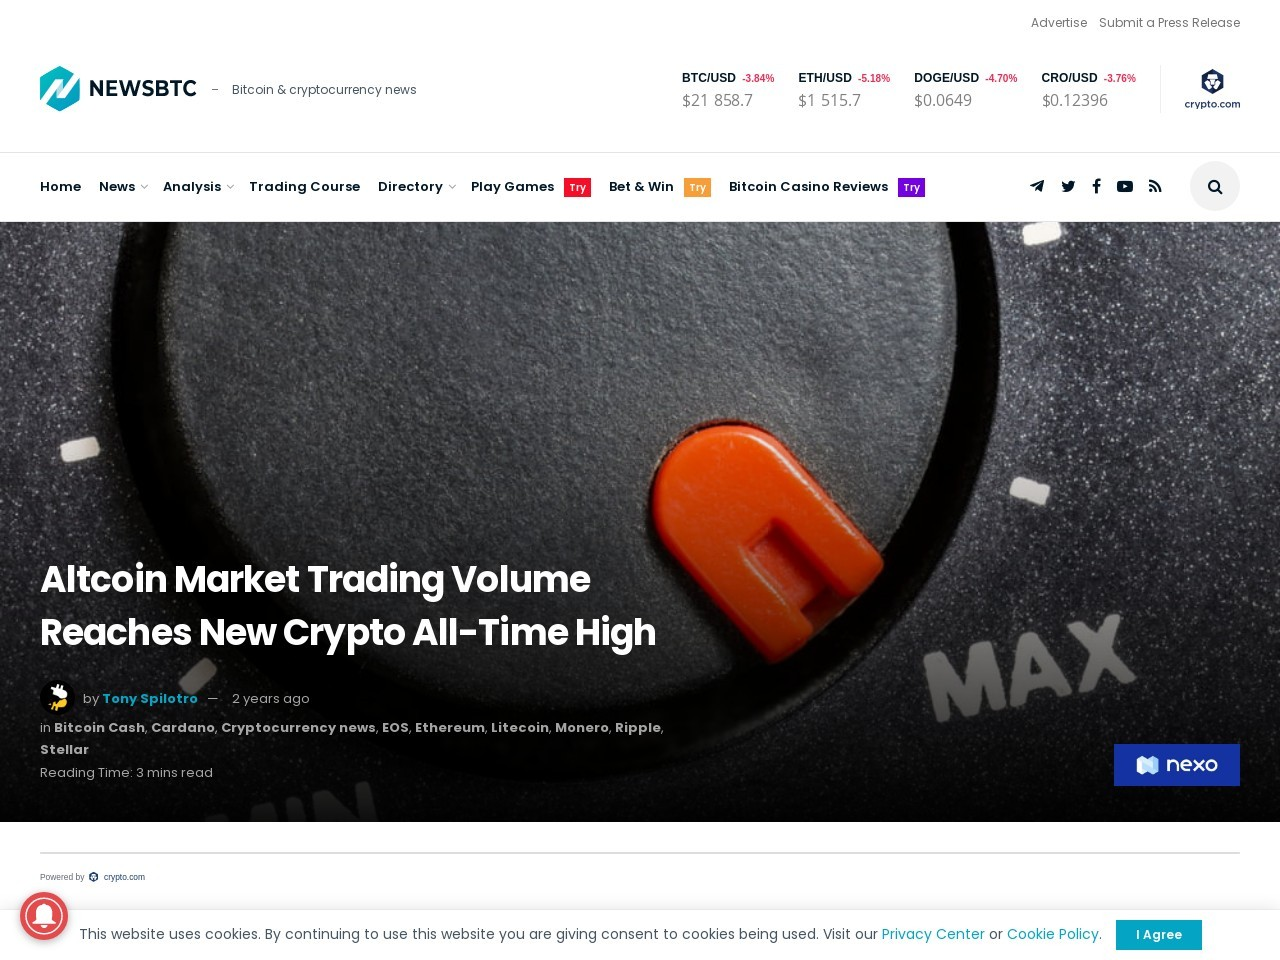 Altcoin Market Trading Volume Reaches New Crypto All-Time High